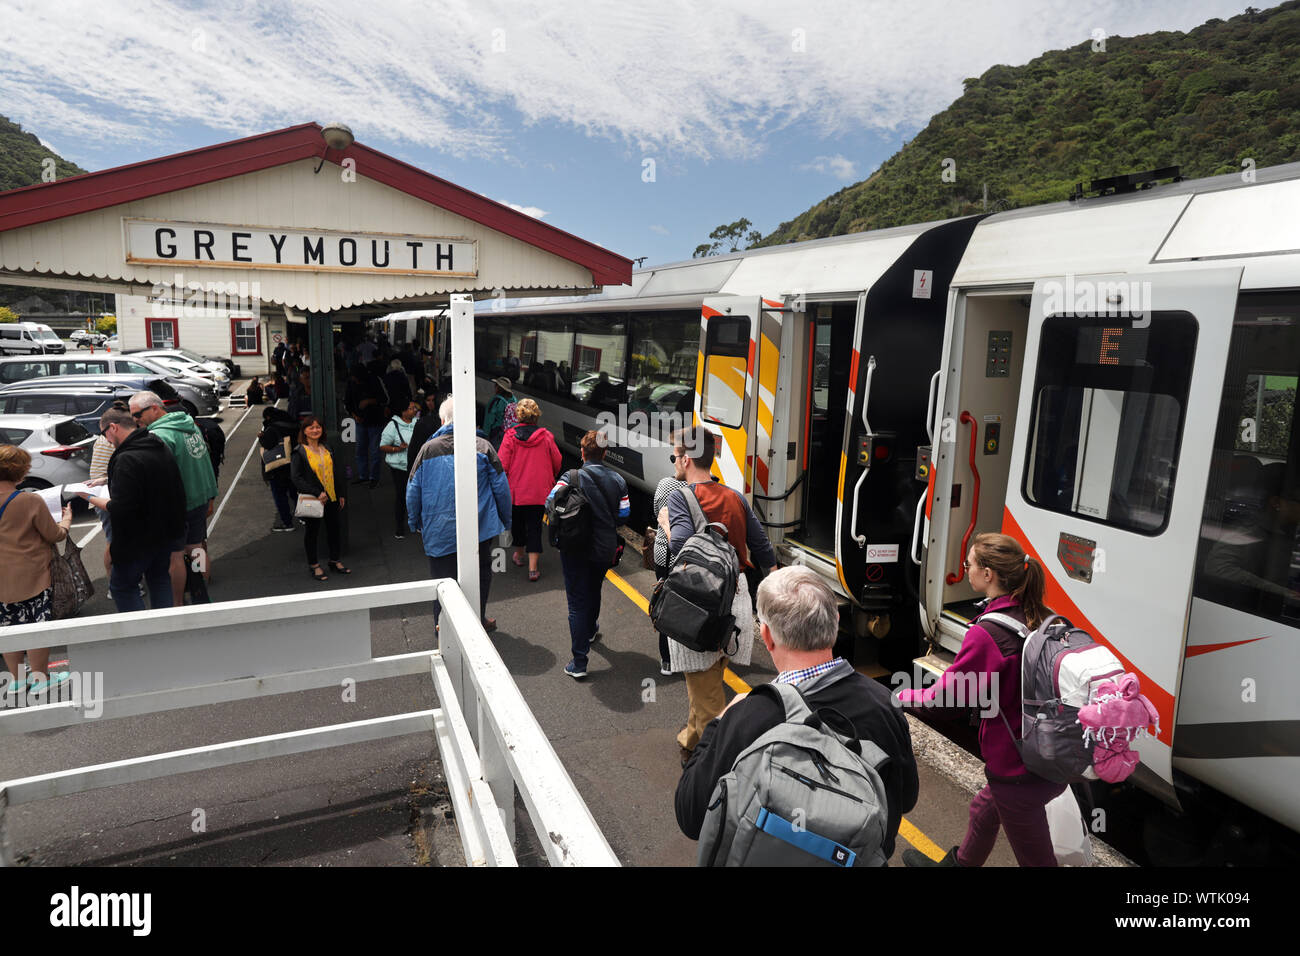 Picture by Tim Cuff - 4 & 5 January 2019 - Tranz Alpine train journey from Greymouth to Christchurch, and next day return, New Zealand: passengers dis Stock Photo